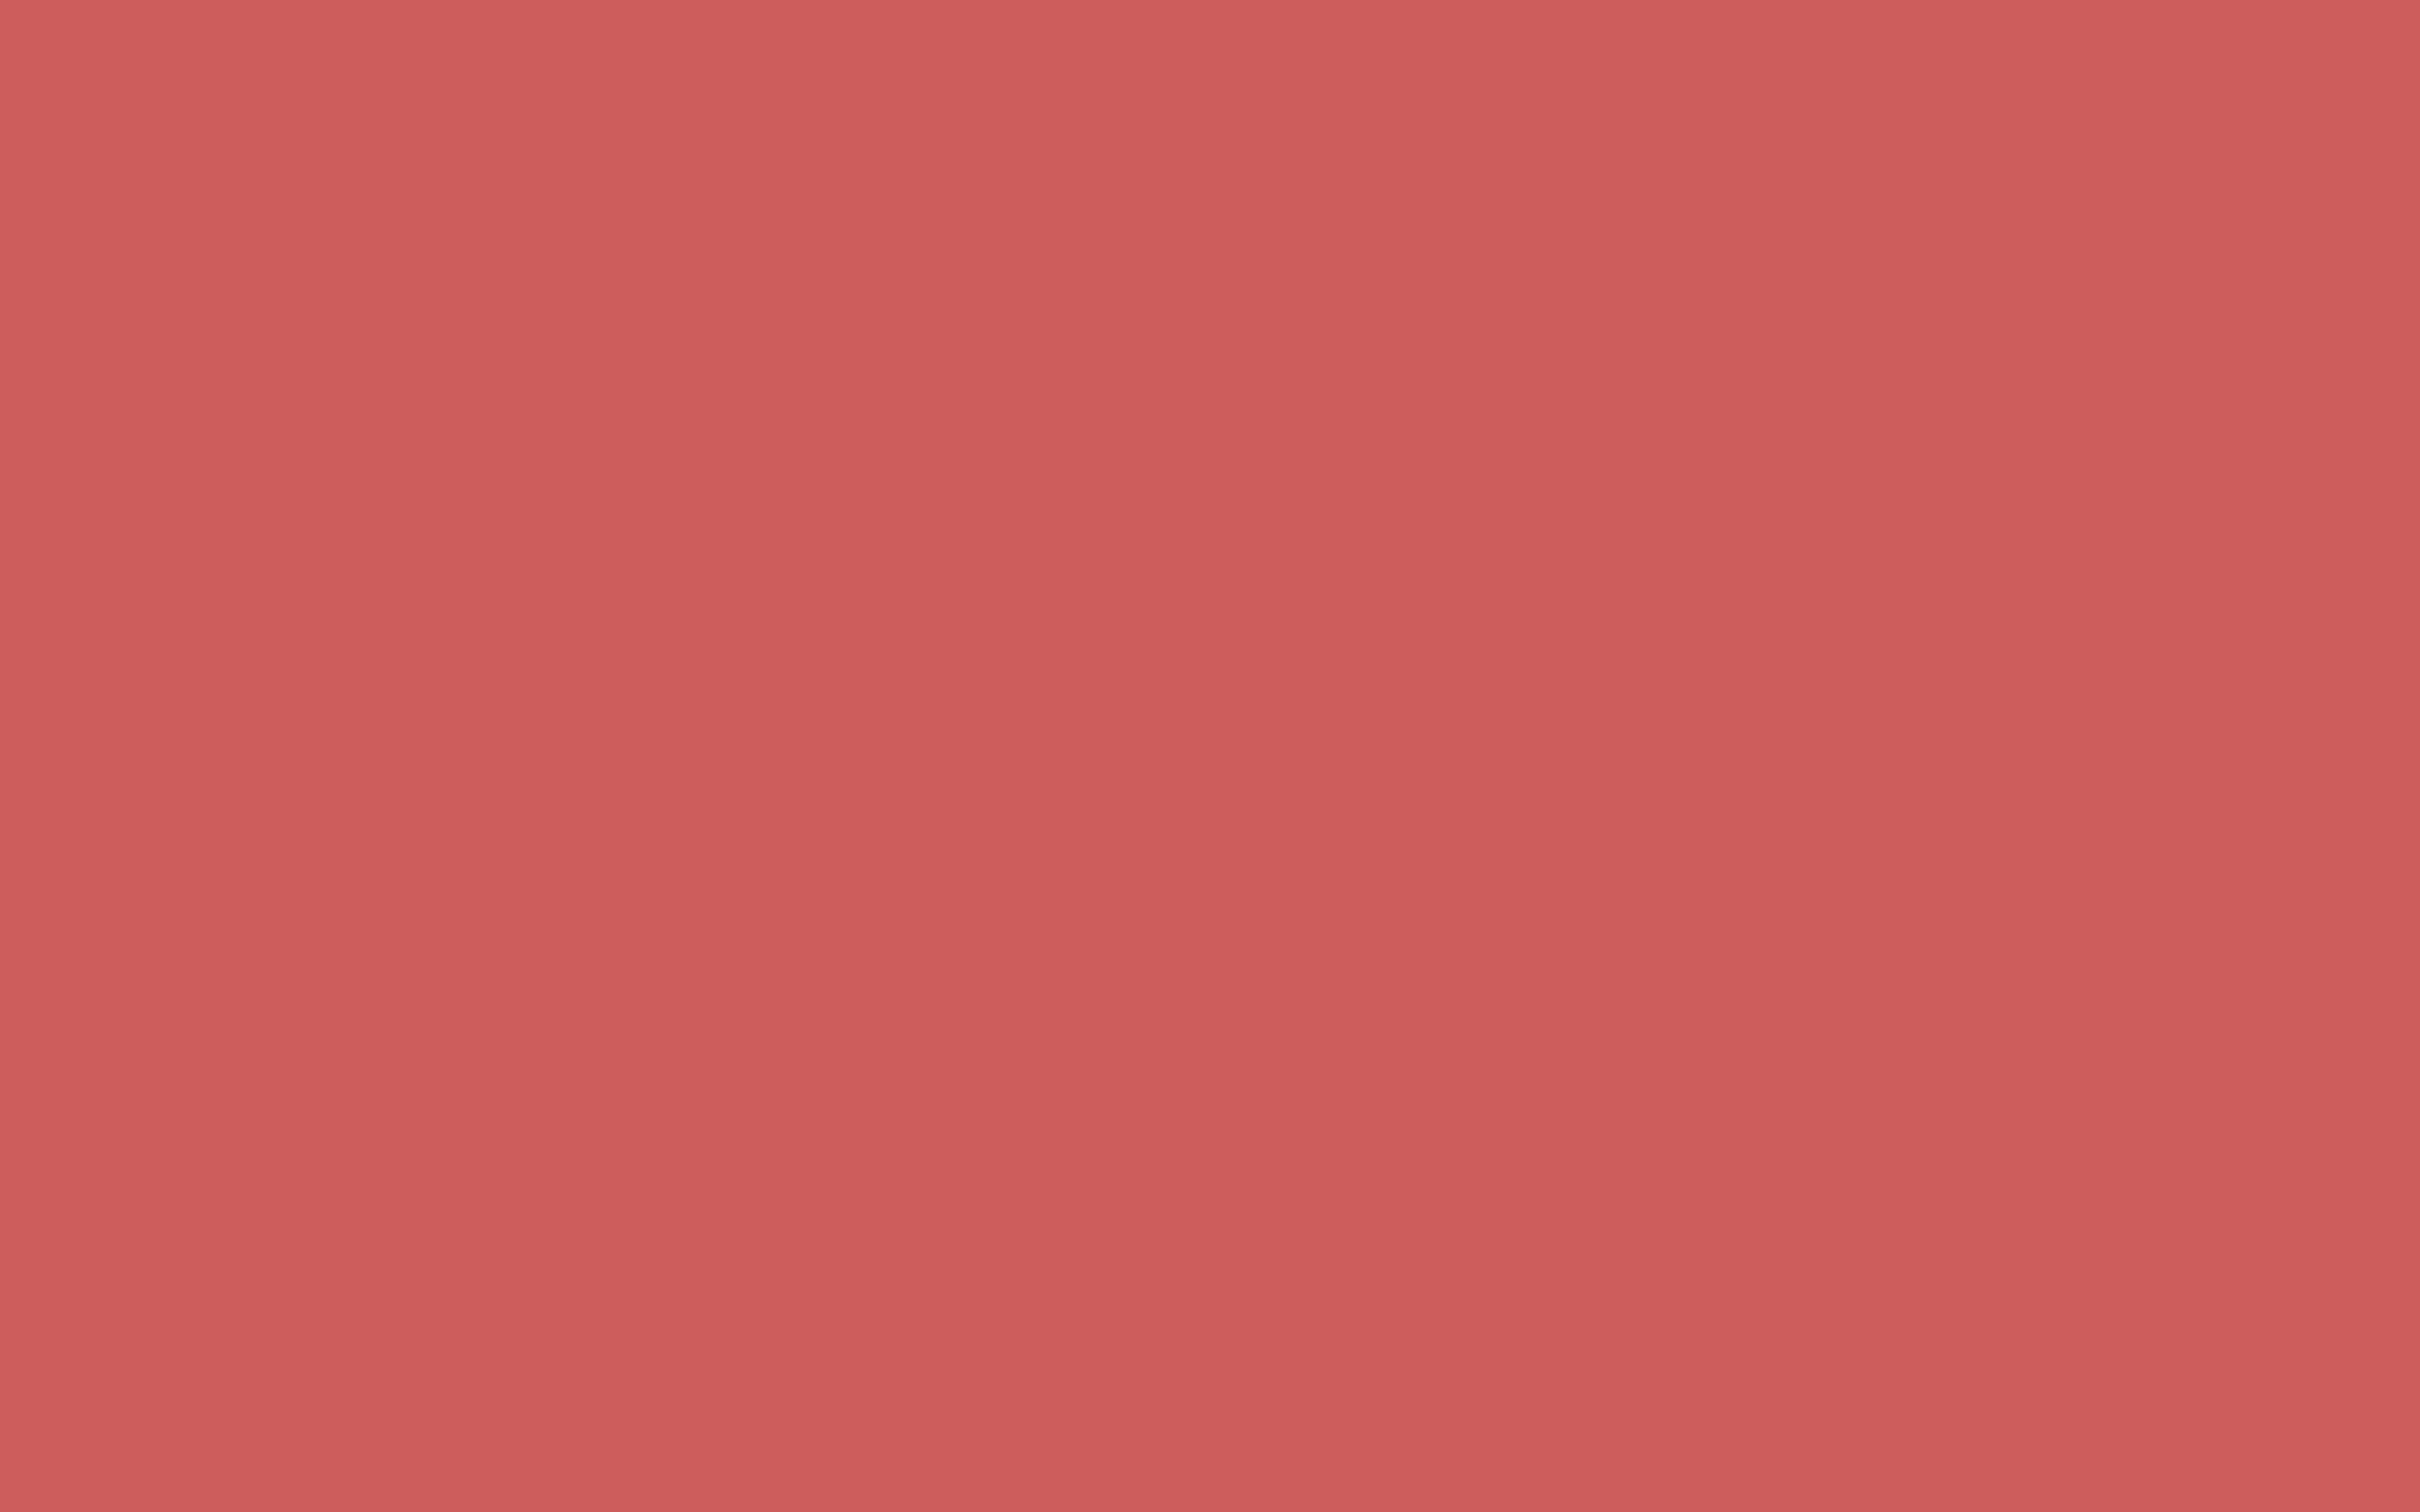 2560x1600 Indian Red Solid Color Background